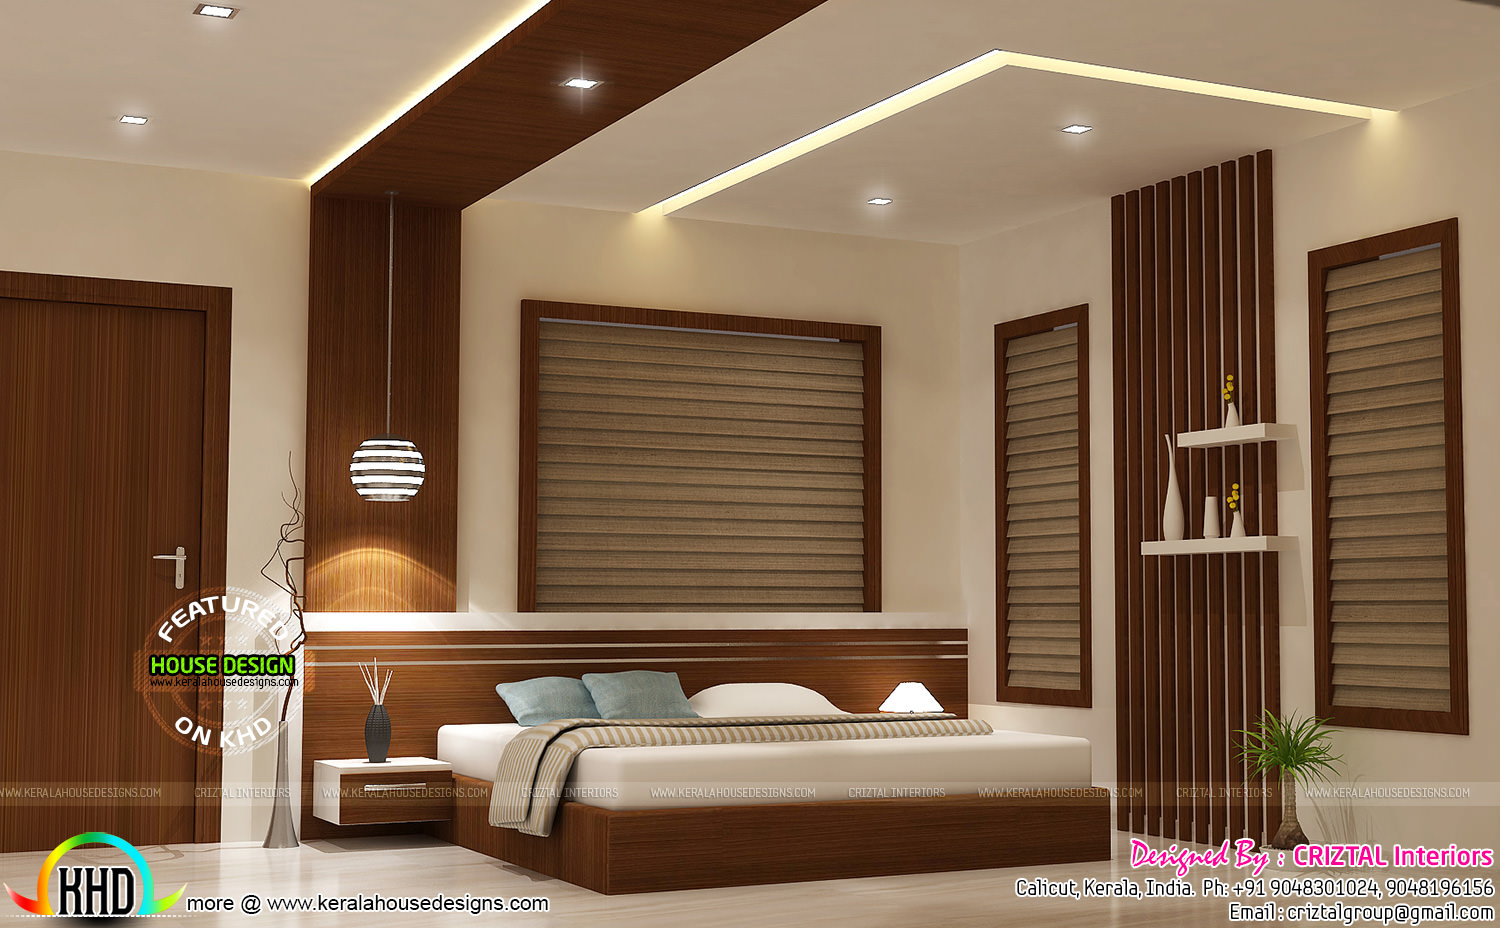 Bedroom dining hall and living interior kerala home for Kerala home interior